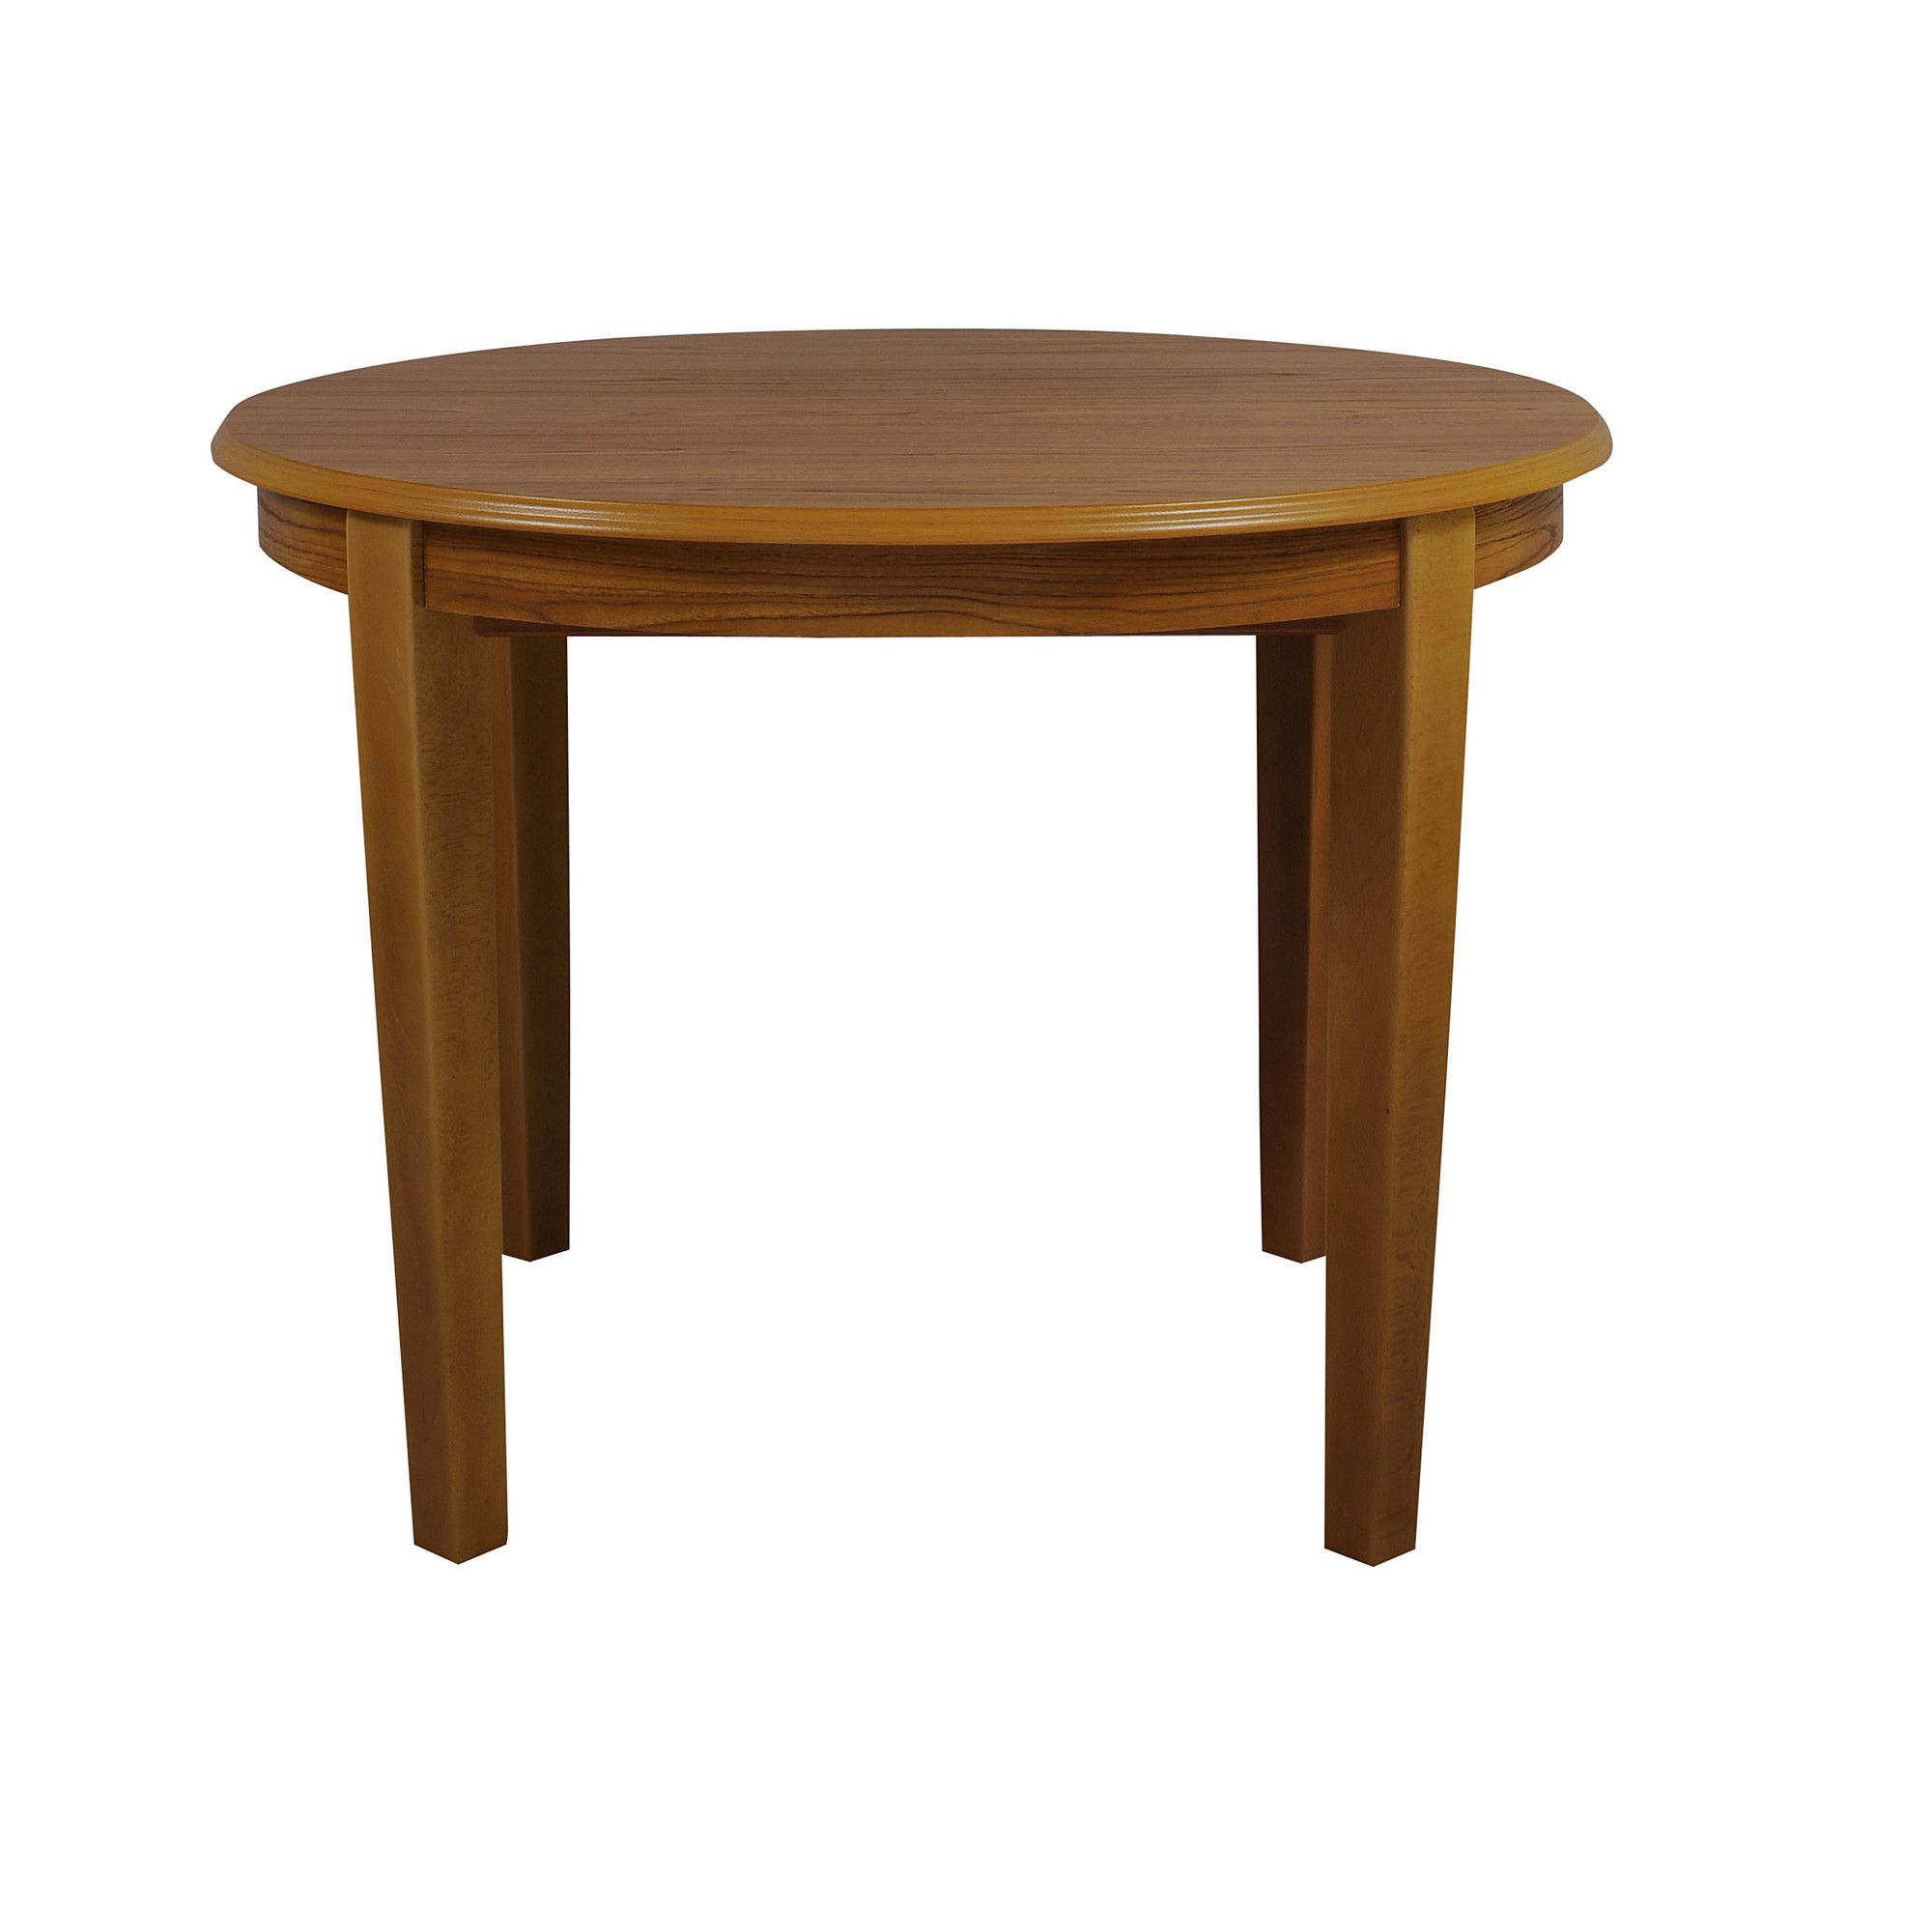 Caxton Tennyson Round Dining Set with 4 Padded Back Dining Chairs in Teak - Green at Tesco Direct